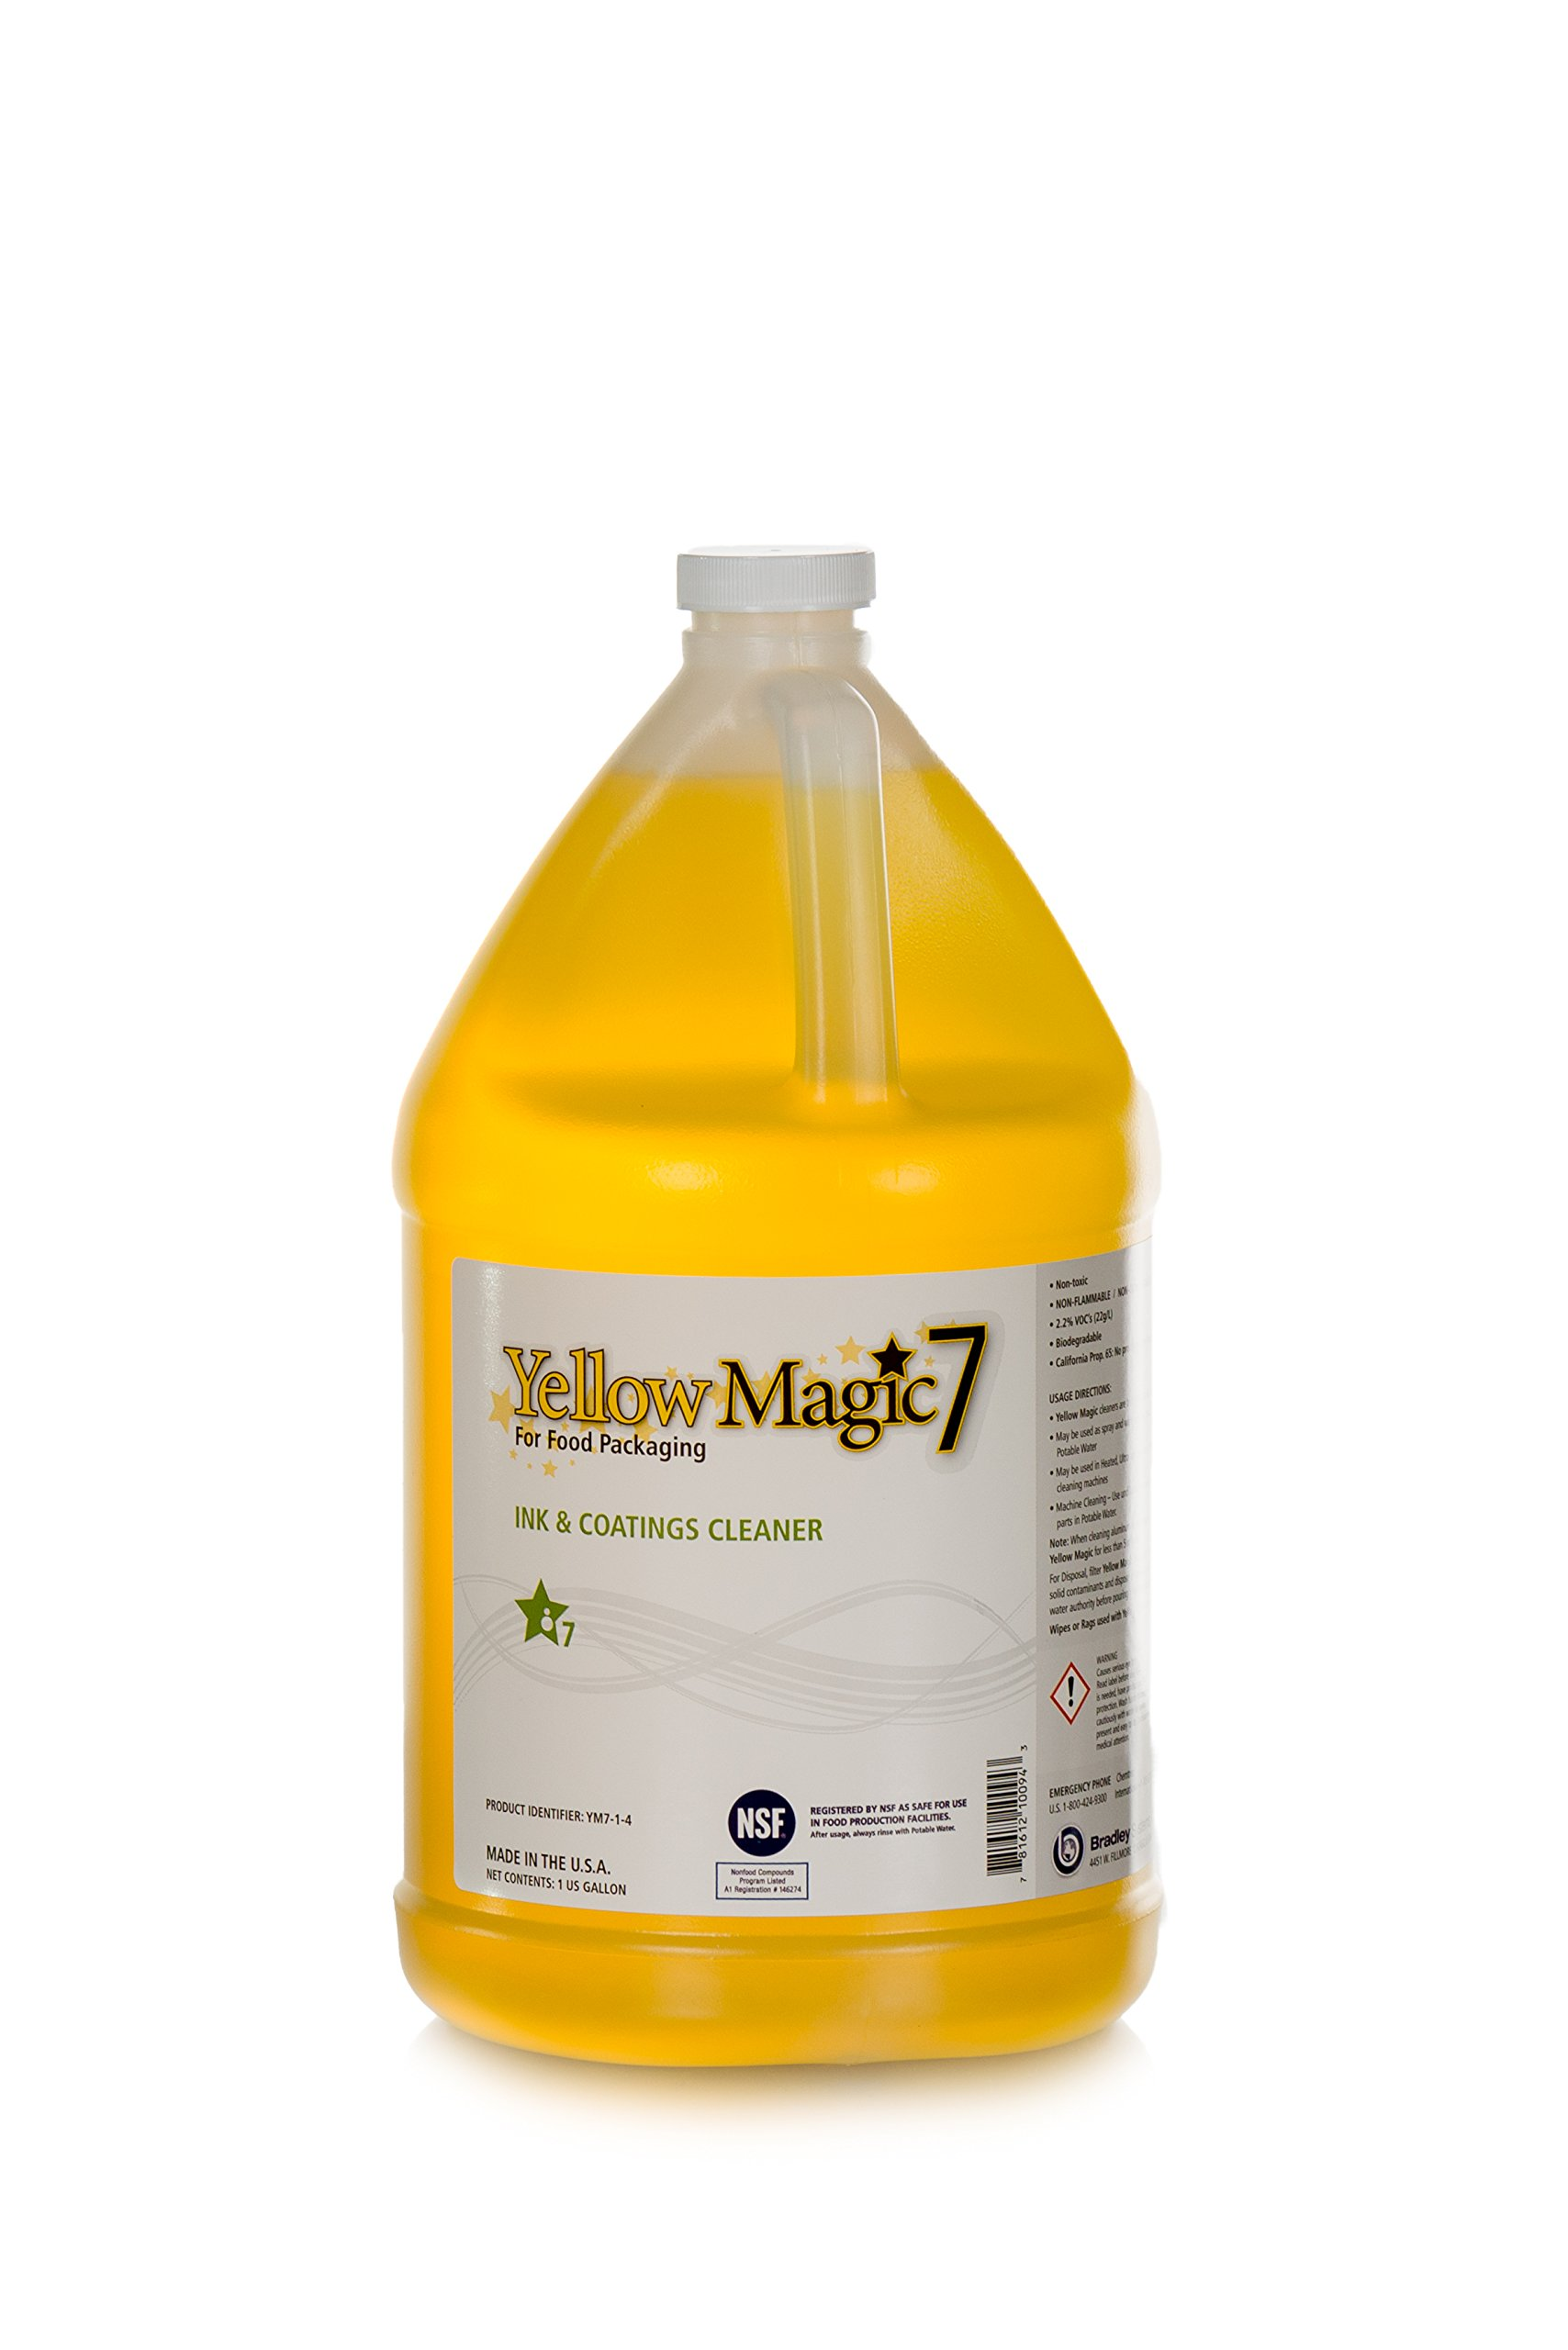 Yellow Magic 7: One Gallon, Full Strength, Undiluted Jug of Human and Pet-safe Flexo UV Ink and Varnish Cleaner for Food Packaging, SLA 3D Printers, Coatings & Varnishes, Rubber, Plastic, Steel by Bradley Systems